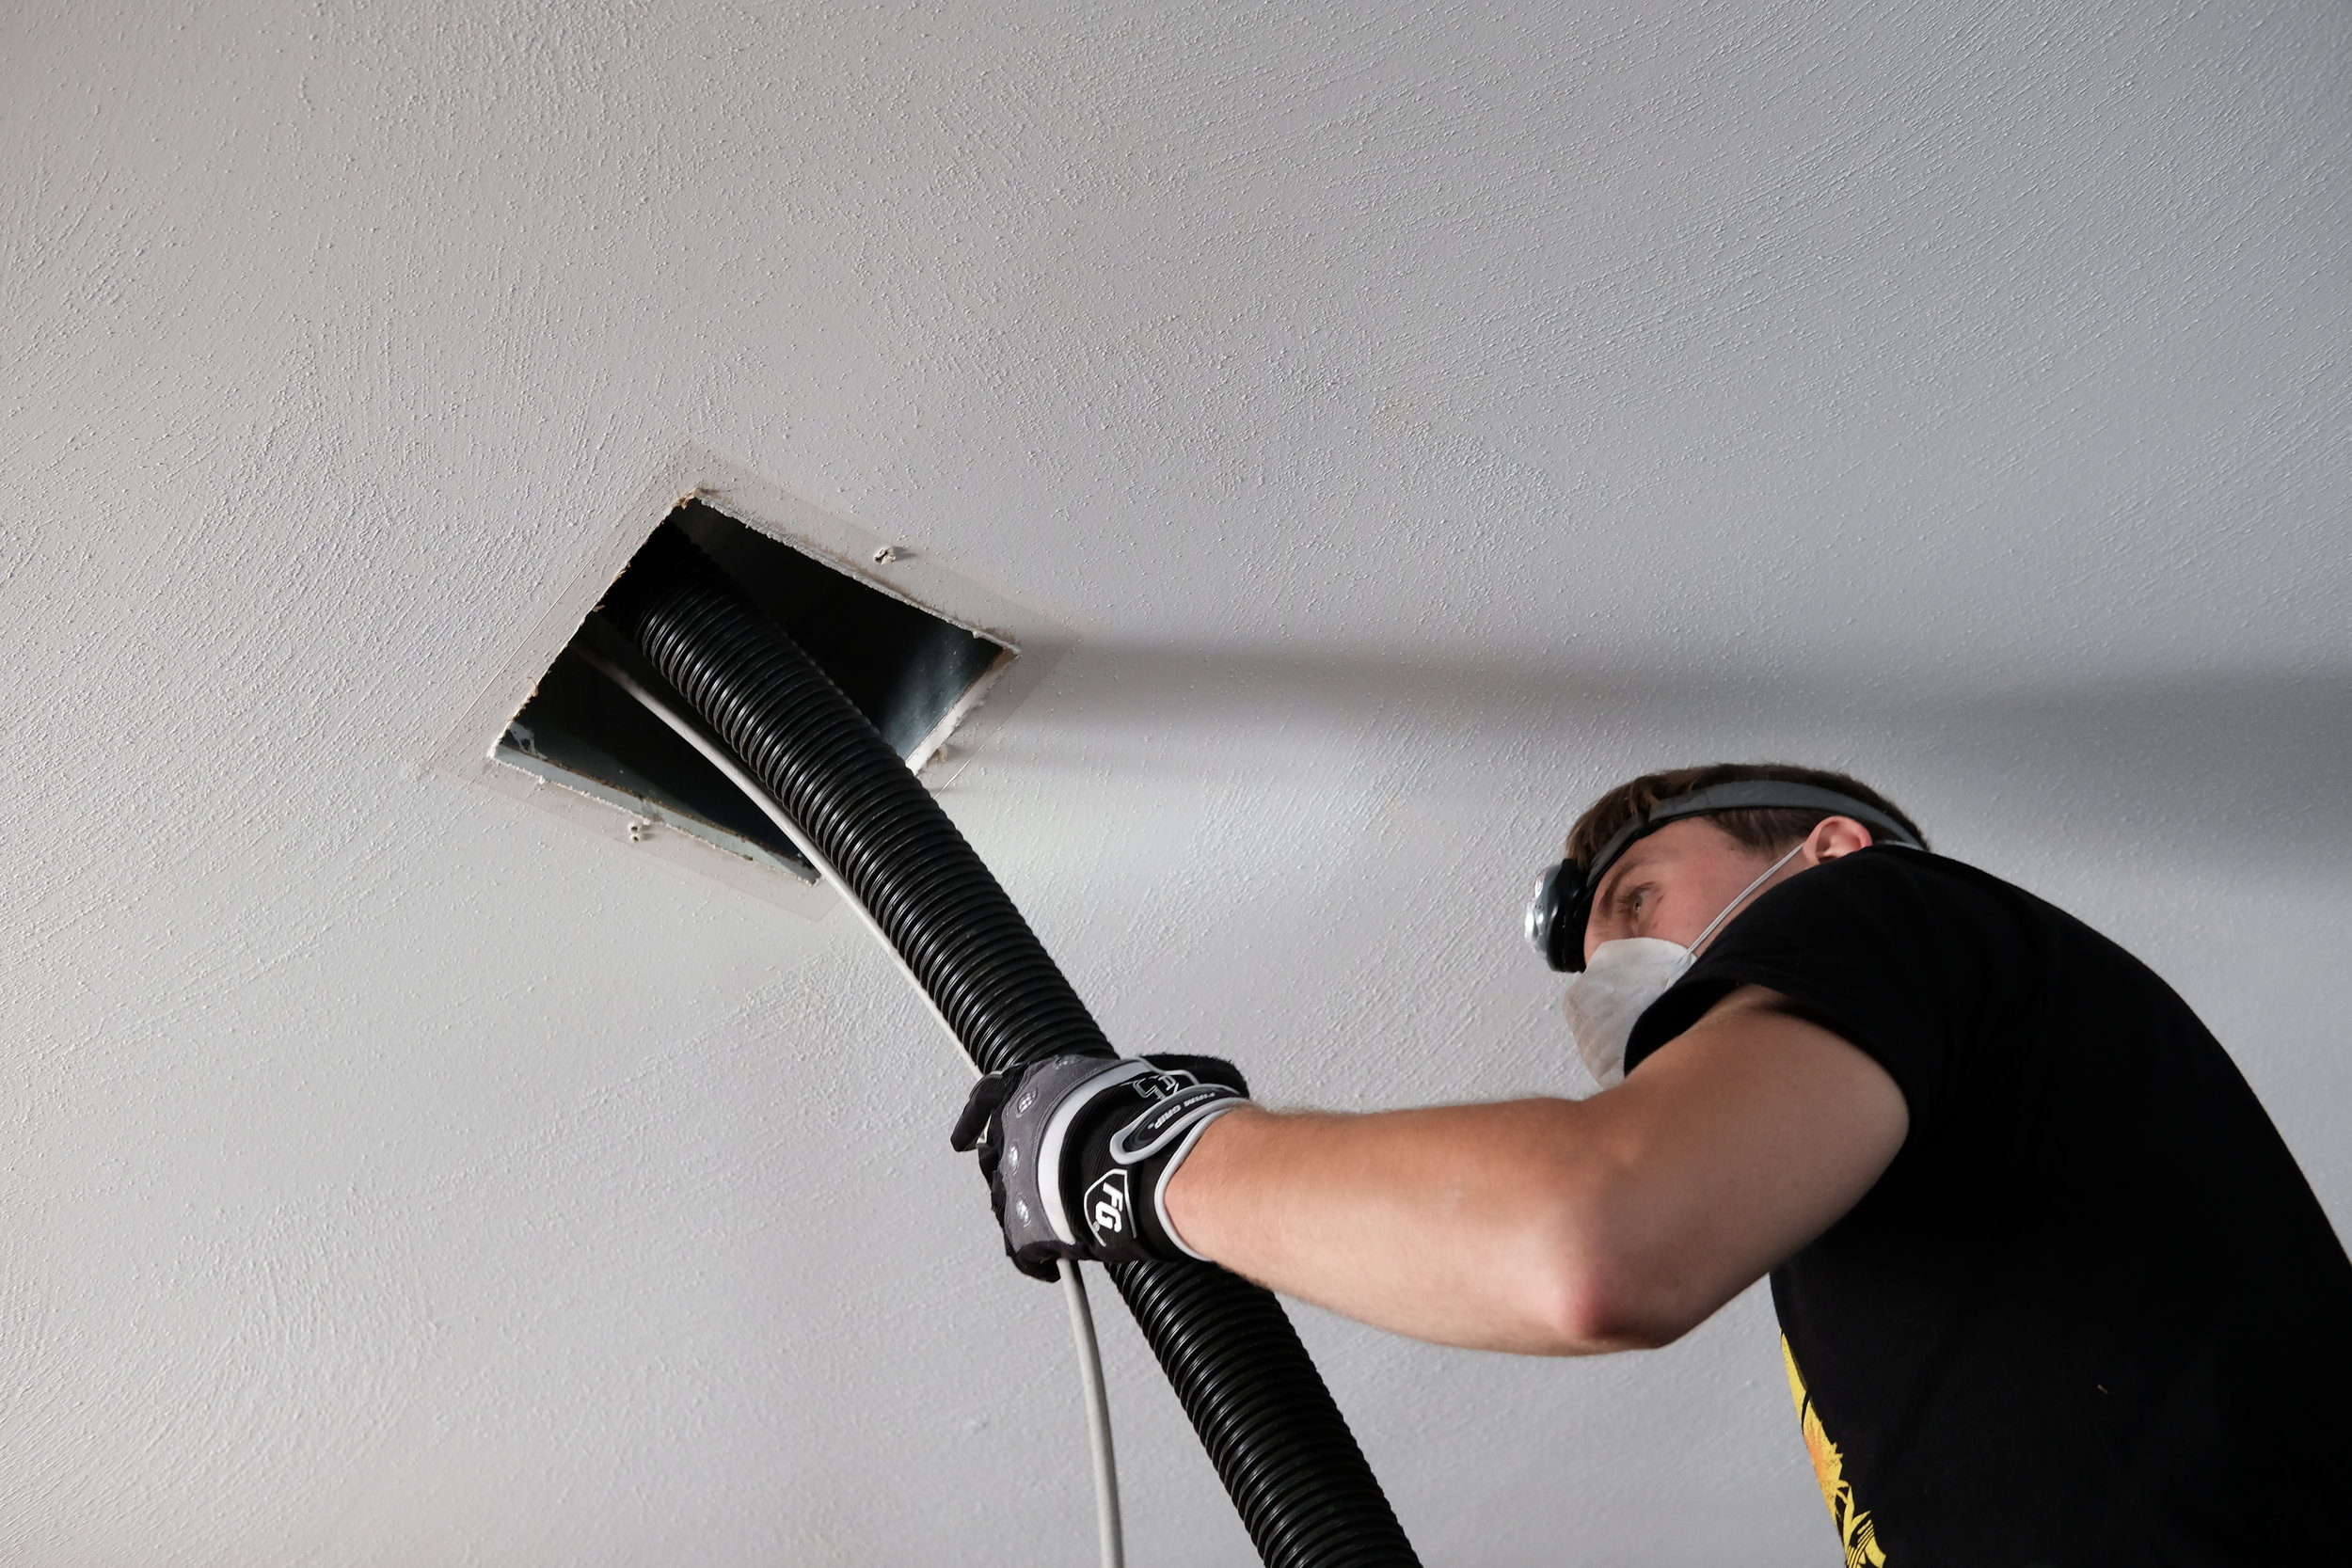 - At Five Star, we want all of our customers to live in healthy homes. Contact us today to have your air ducts cleaned and see the difference it will make in your home!